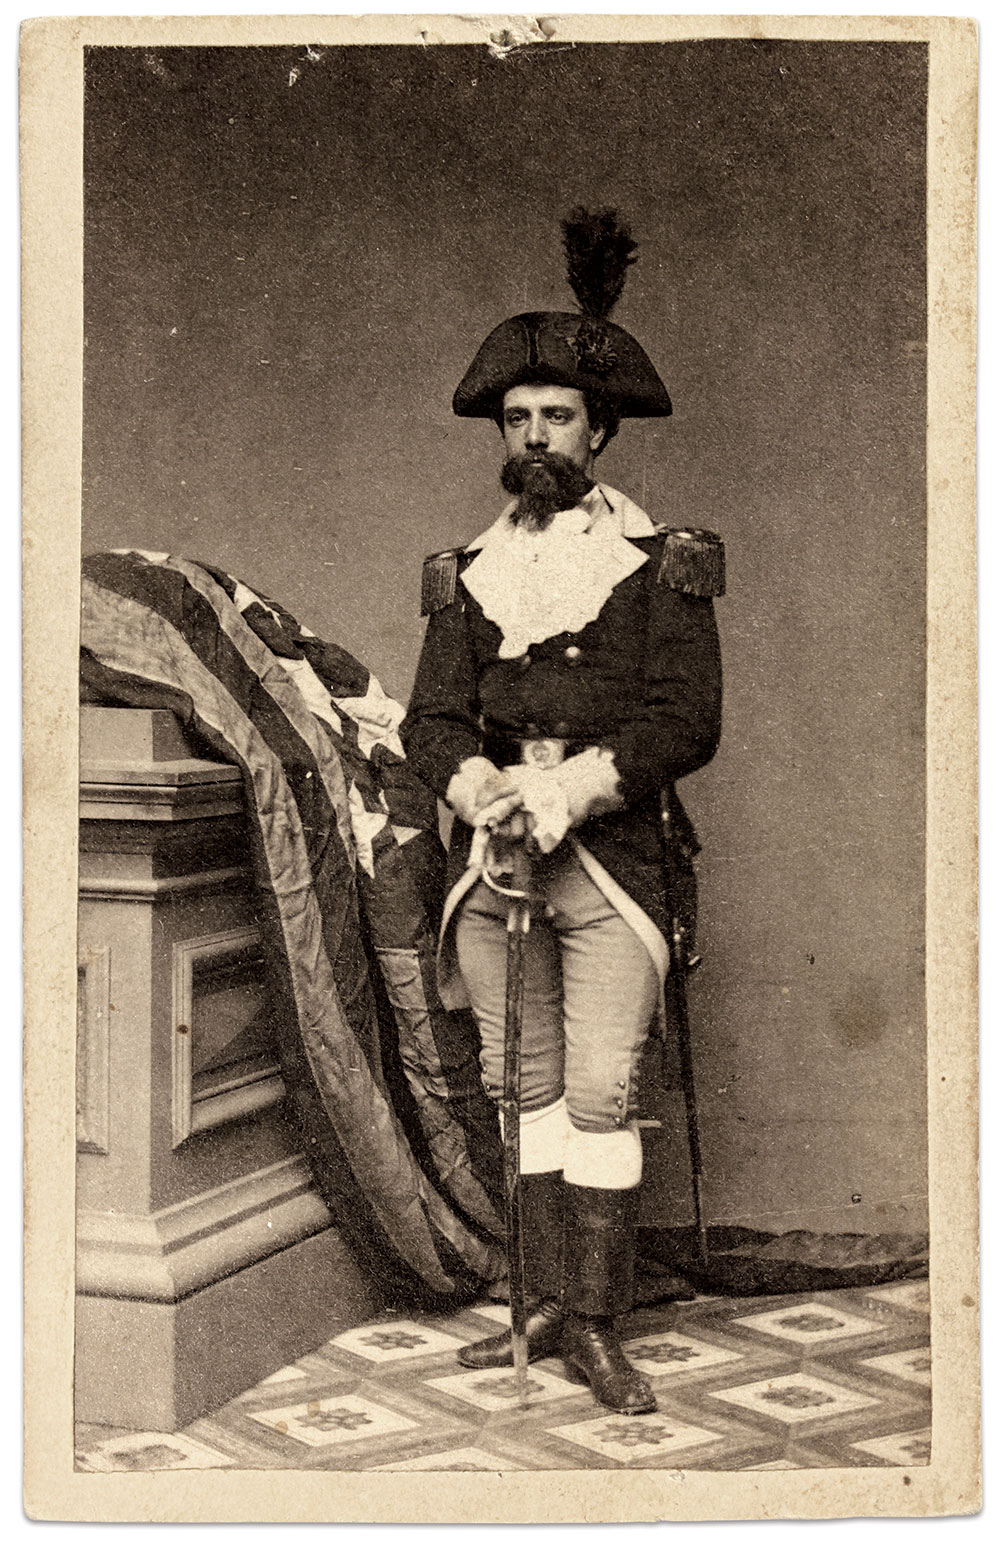 Carte de visite by Holmes' Park Gallery of New York City. Buck Zaidel Collection.